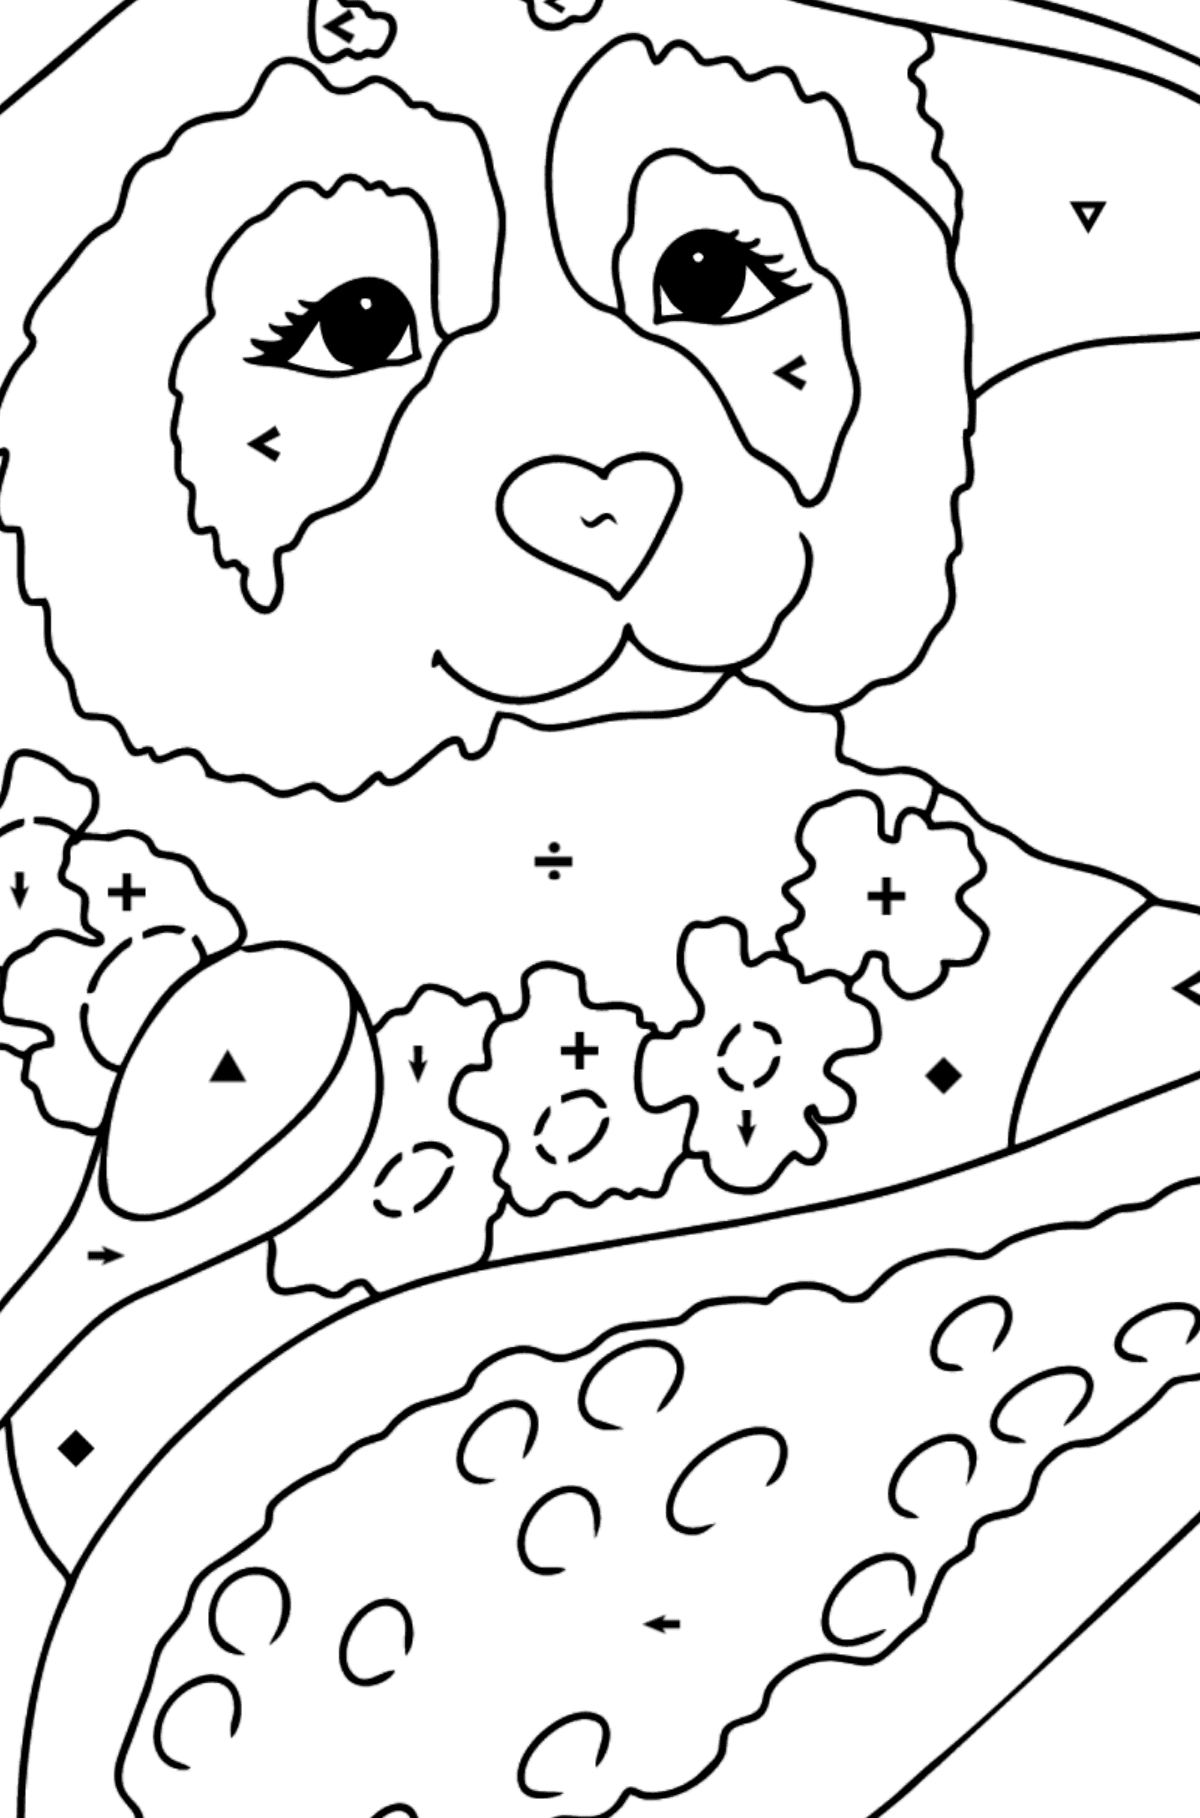 Coloring Page - A Panda is Eating - Coloring by Symbols for Kids